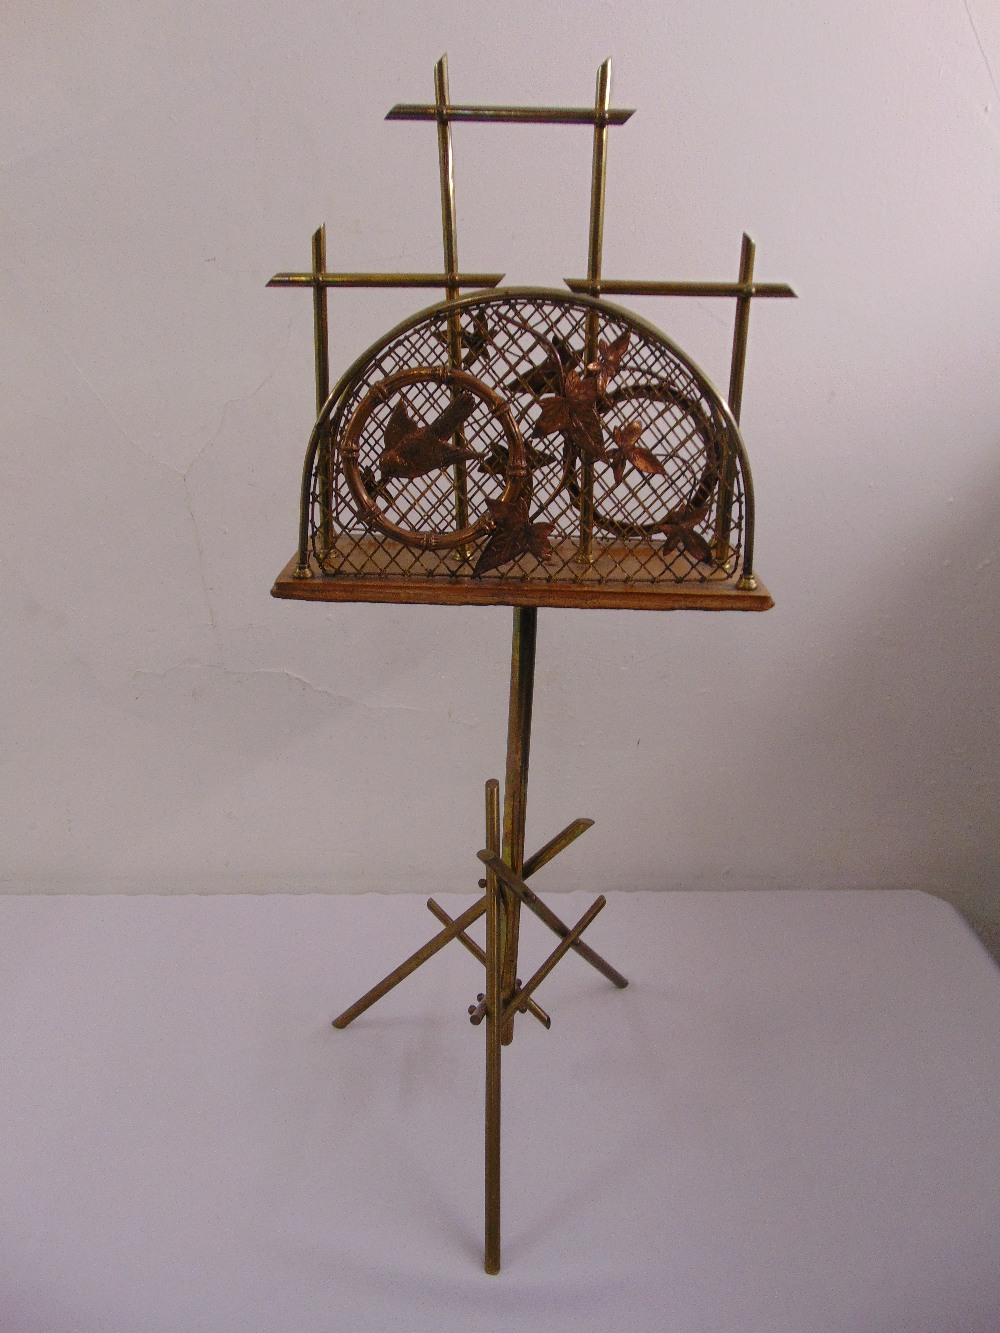 Lot 37 - An aesthetic style magazine rack with applied leaves and birds on triform base